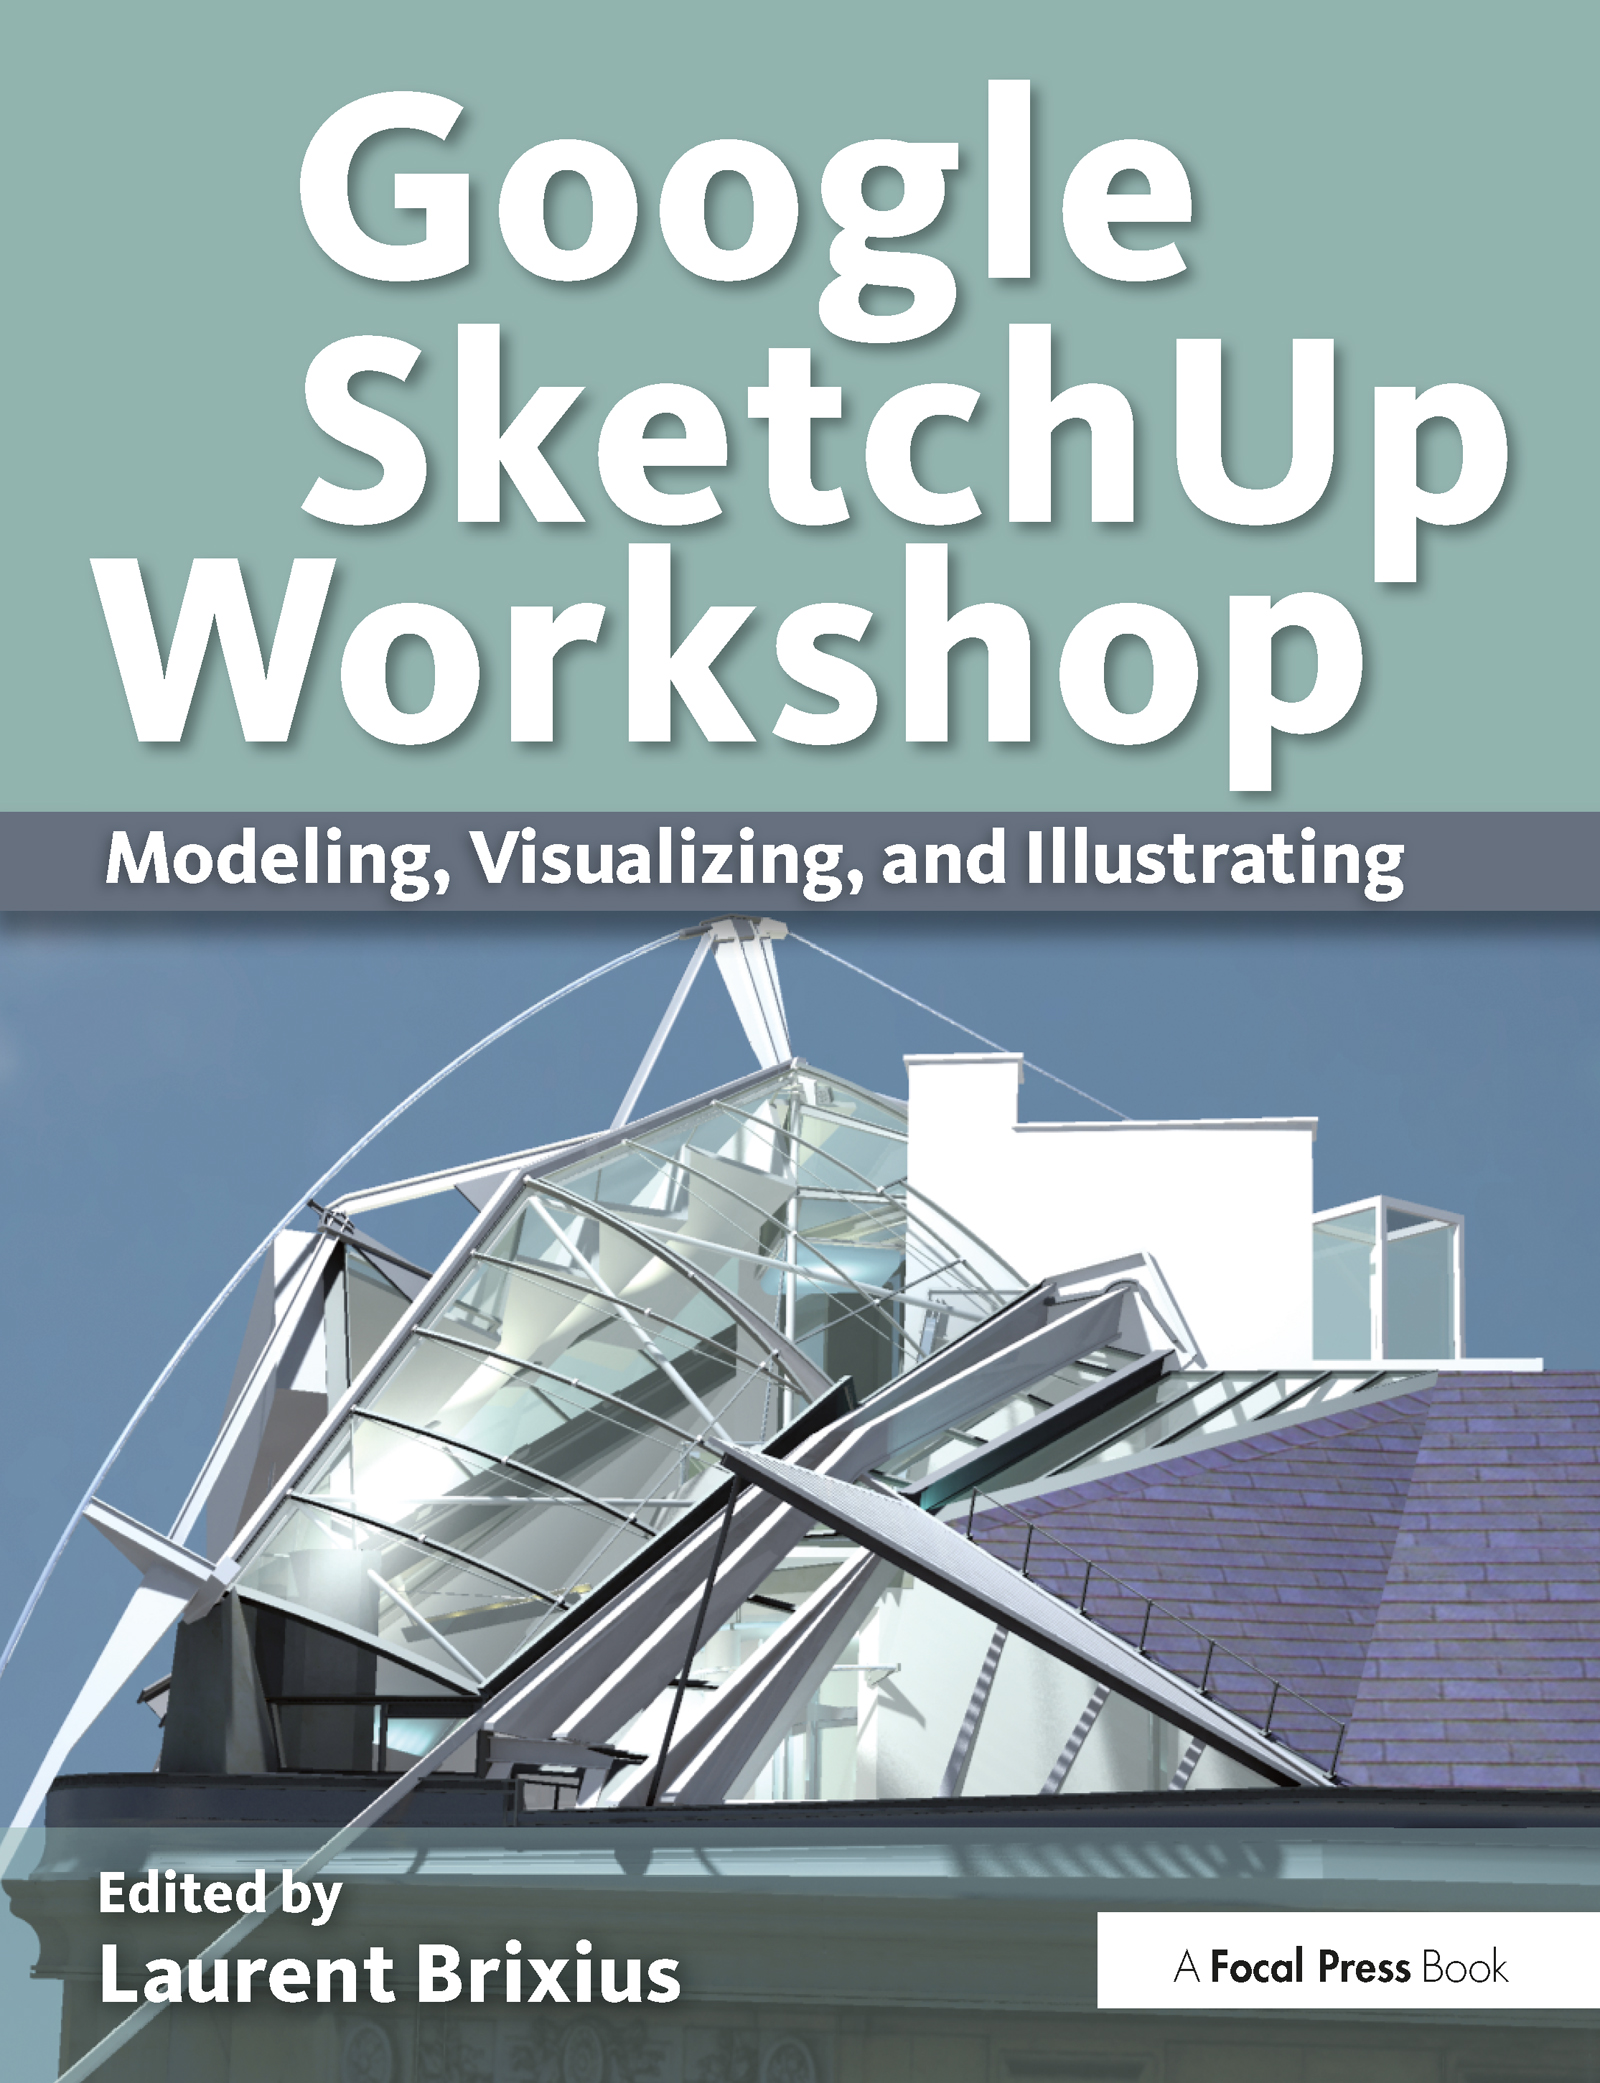 Google SketchUp Workshop: Modeling, Visualizing, and Illustrating book cover